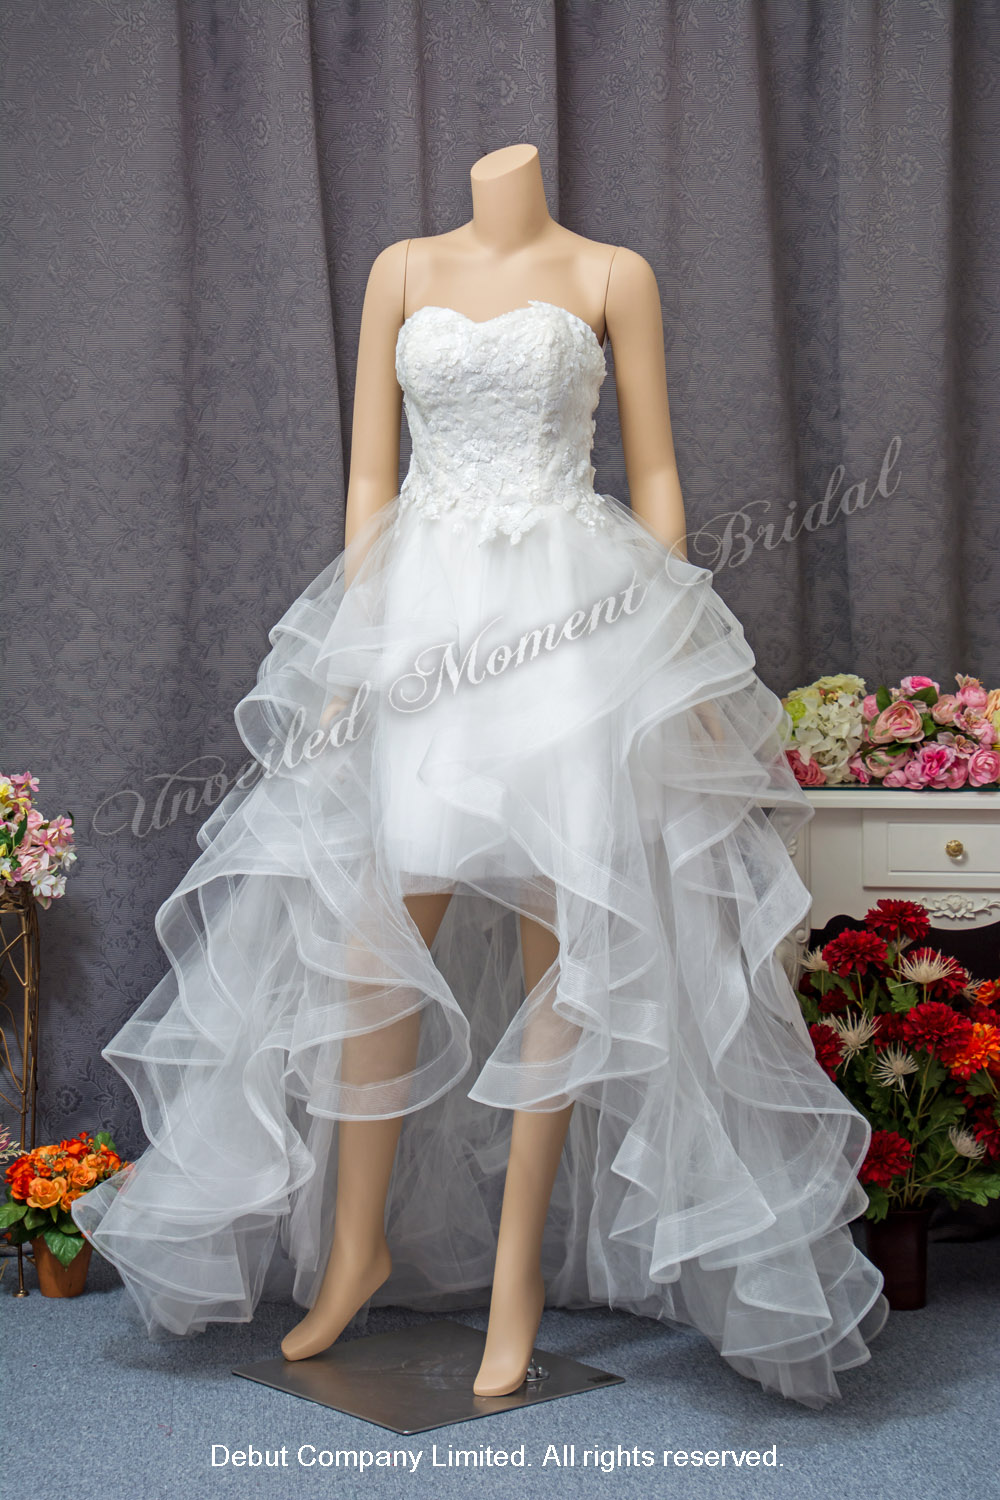 Strapless, Sweetheart neckline, lace embellishment, Short Bridal Dress with ruffles court train. 無肩帯, 心型領口, 蕾絲釘珠, 波浪輕紗拖尾, 前短後長款輕婚紗